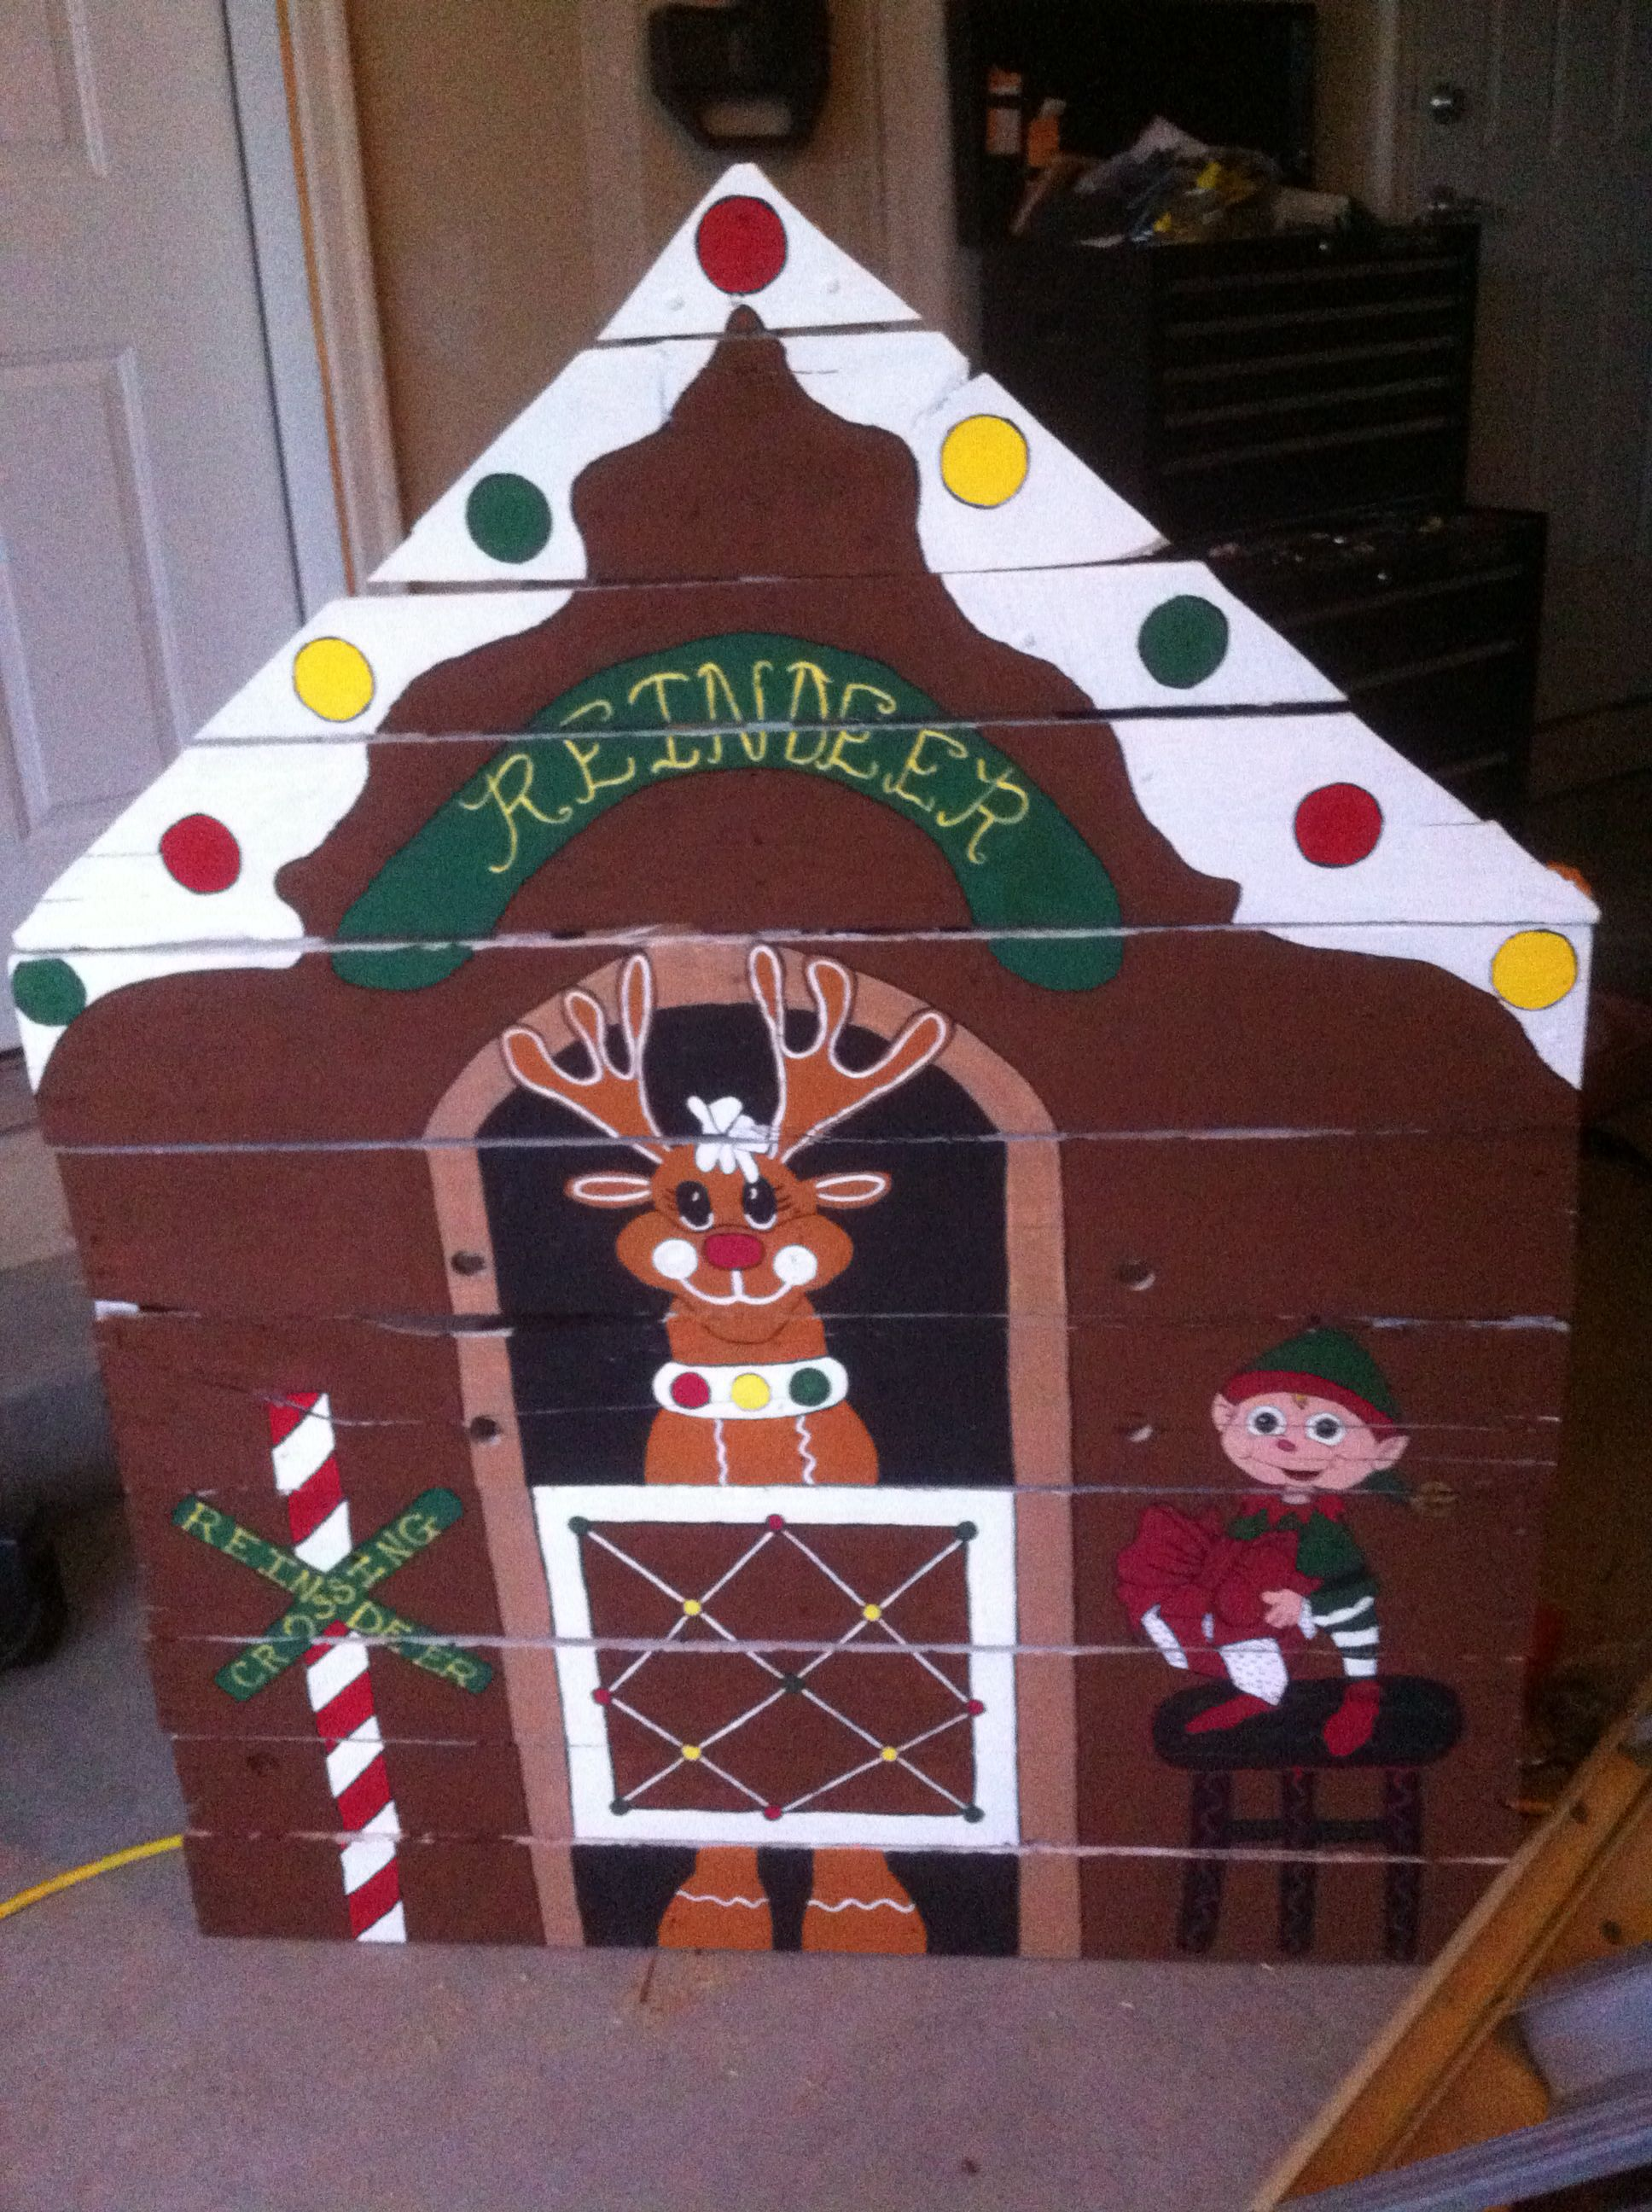 Gingerbread Reindeer Stables With Elf Hand Painted On A Pallet Christmas Pall Christmas Yard Decorations Christmas Yard Art Christmas Decorations Diy Outdoor